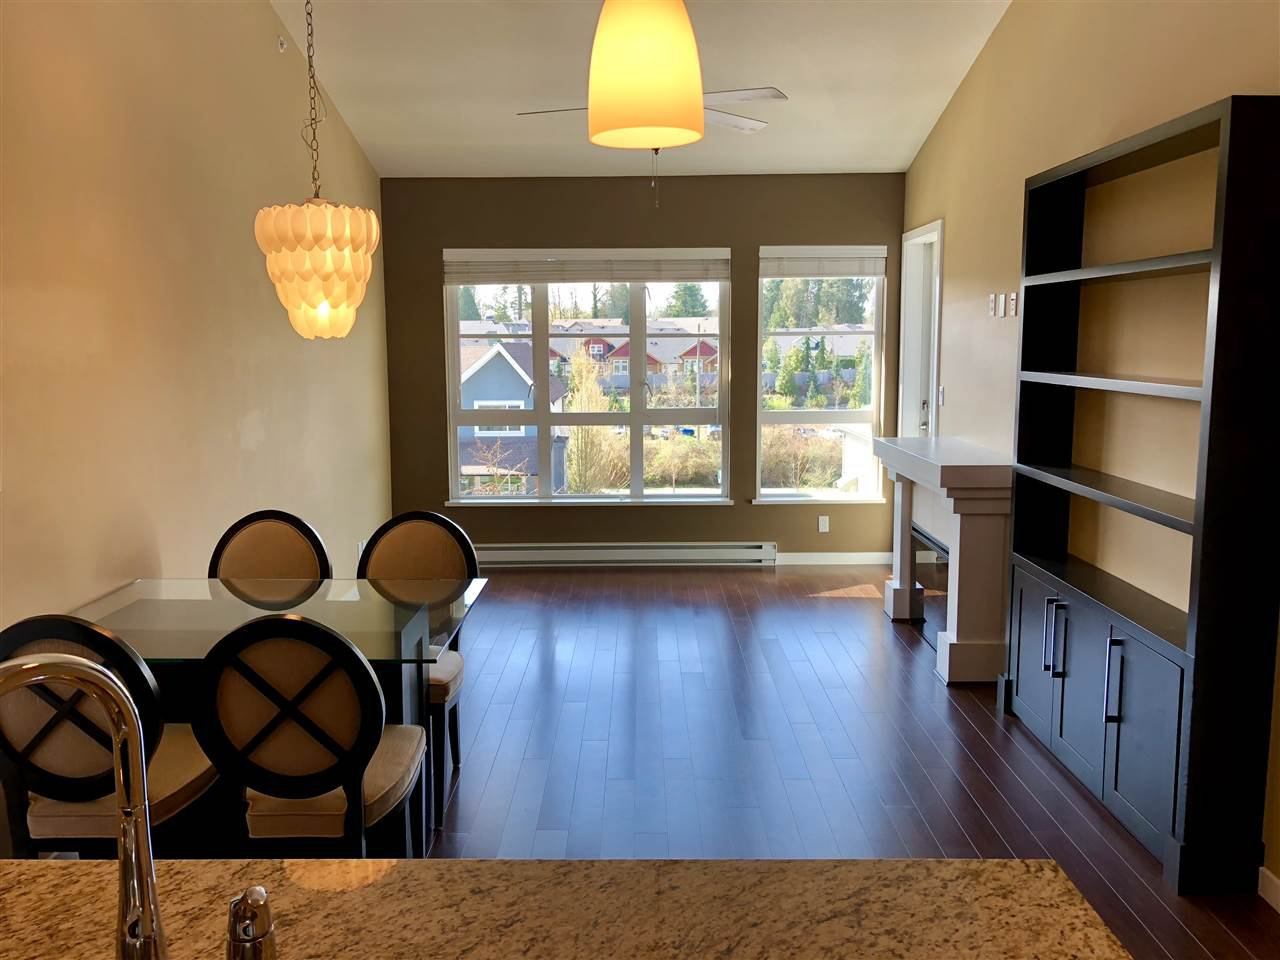 """Photo 11: Photos: 408 23215 BILLY BROWN Road in Langley: Fort Langley Condo for sale in """"WATERFRONT AT BEDFORD LANDING"""" : MLS®# R2390619"""